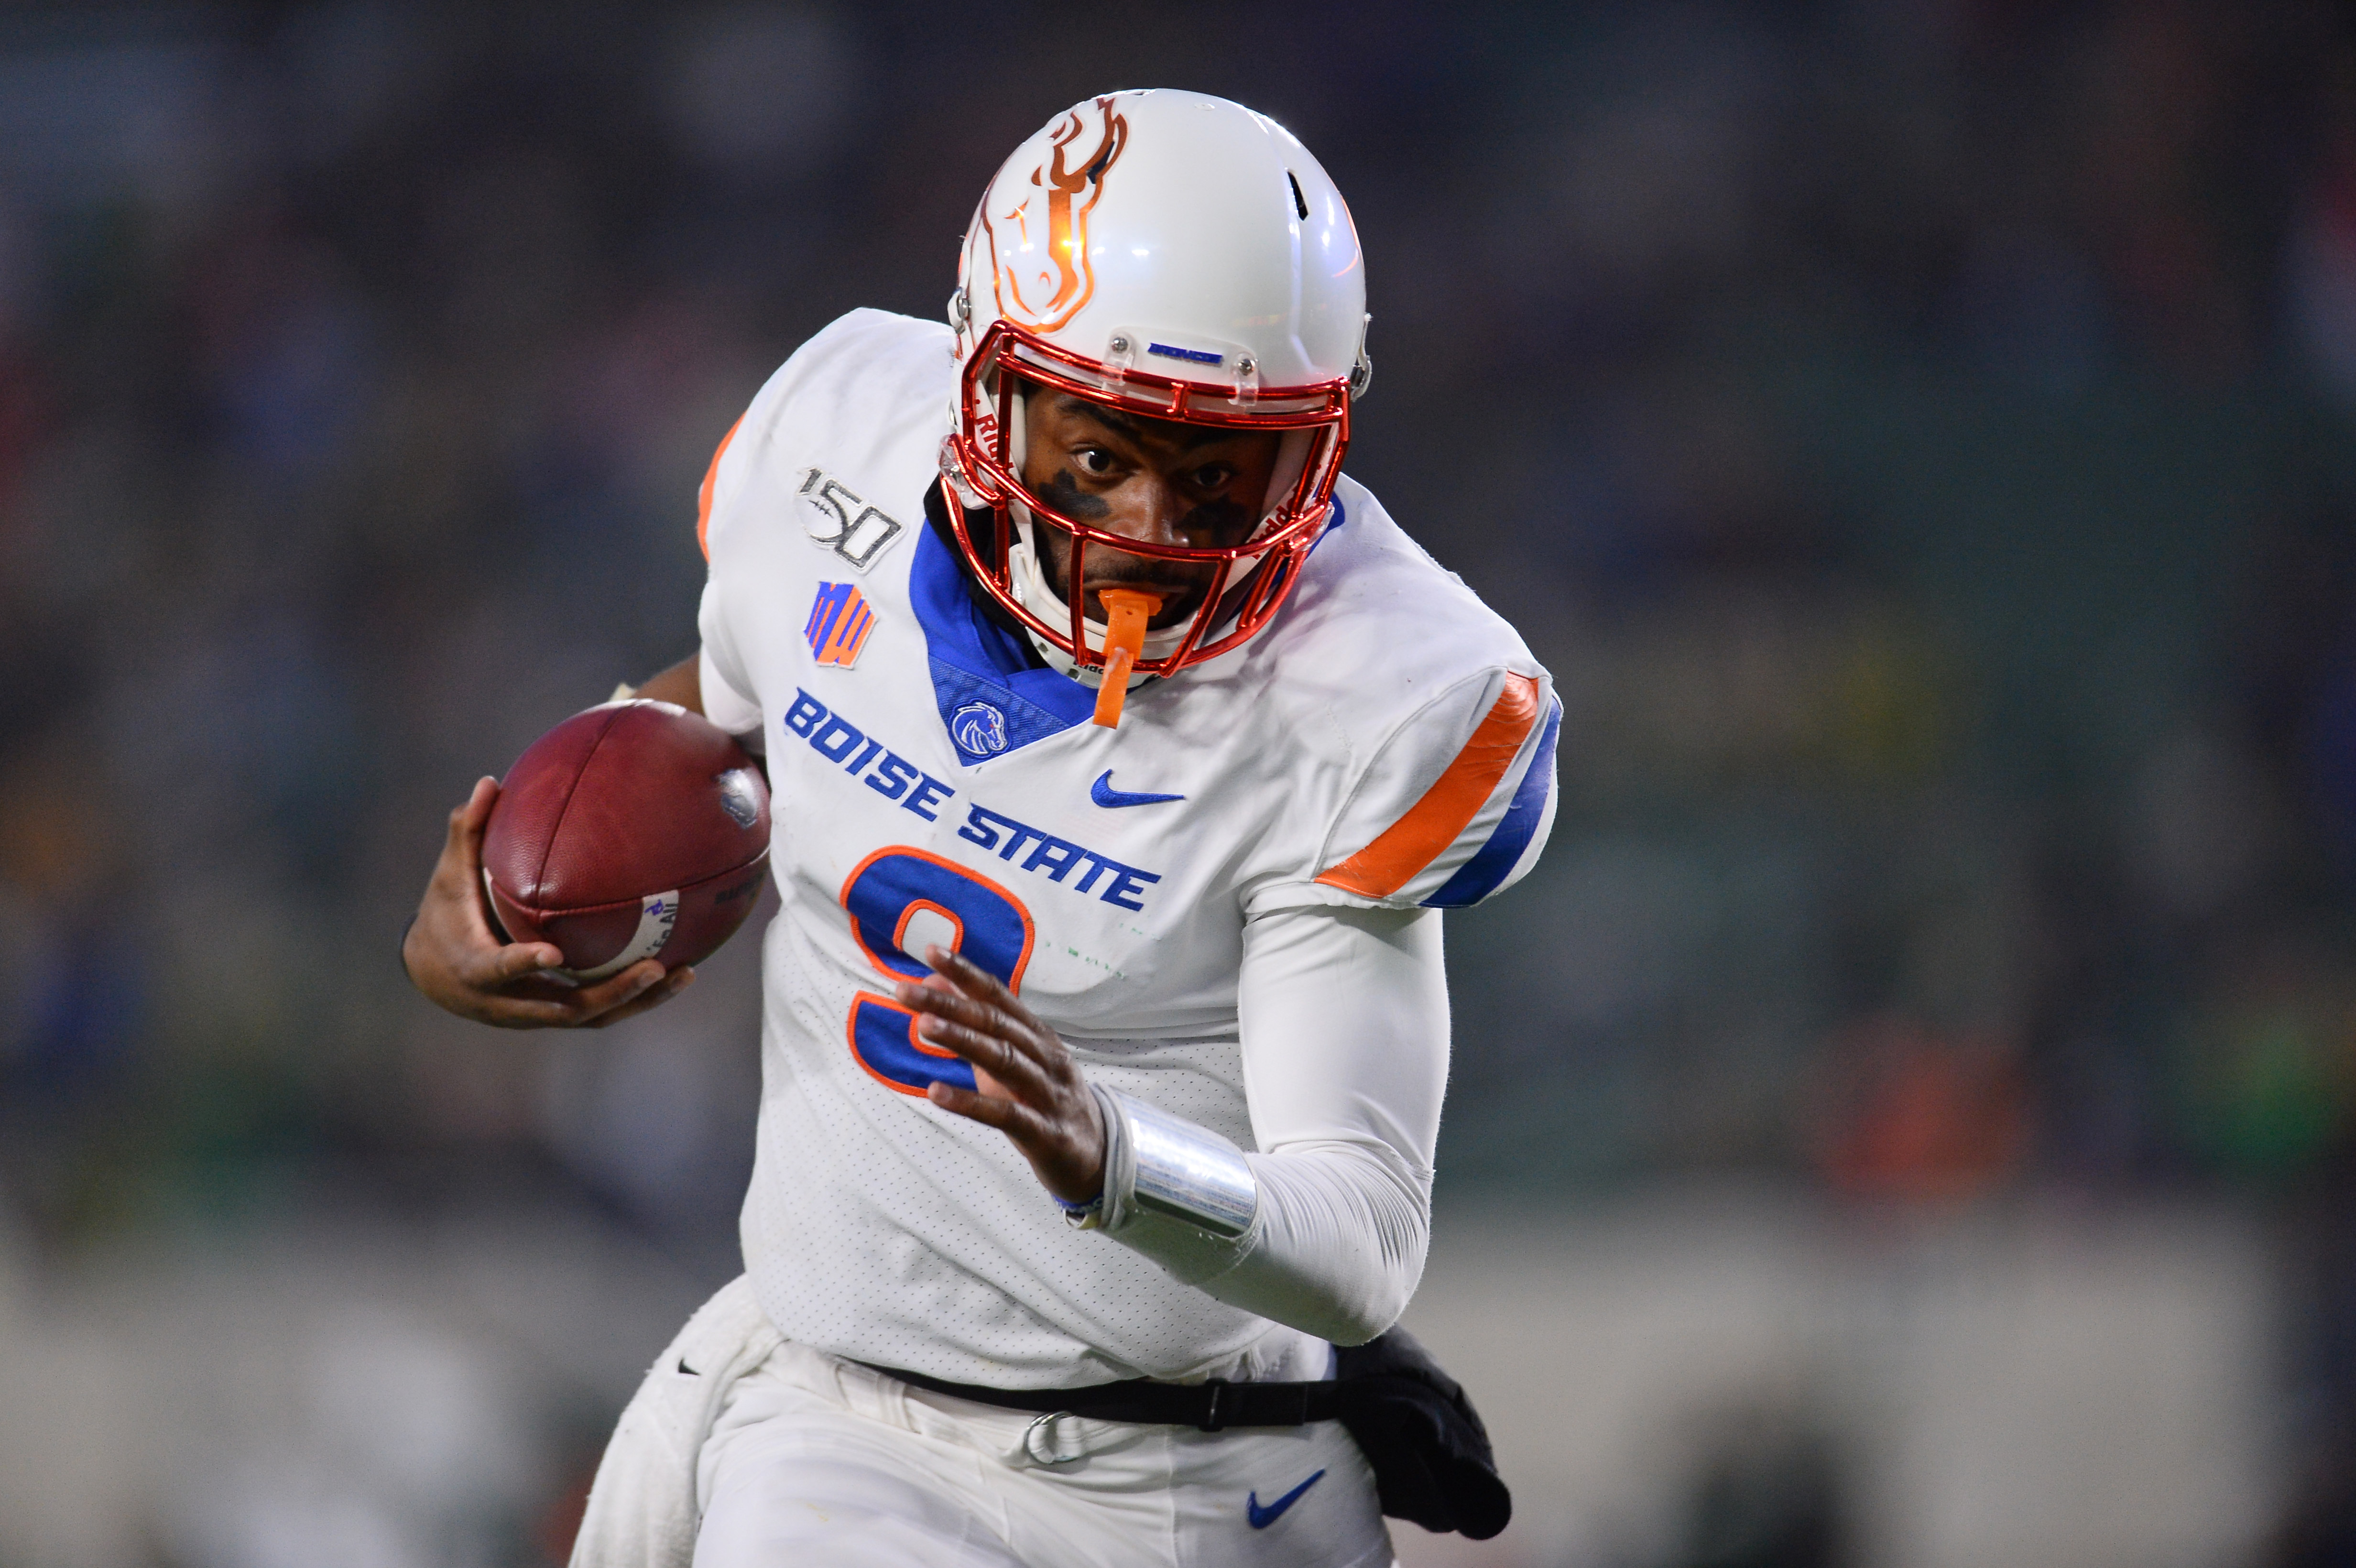 NCAA Football: Boise State at Colorado State